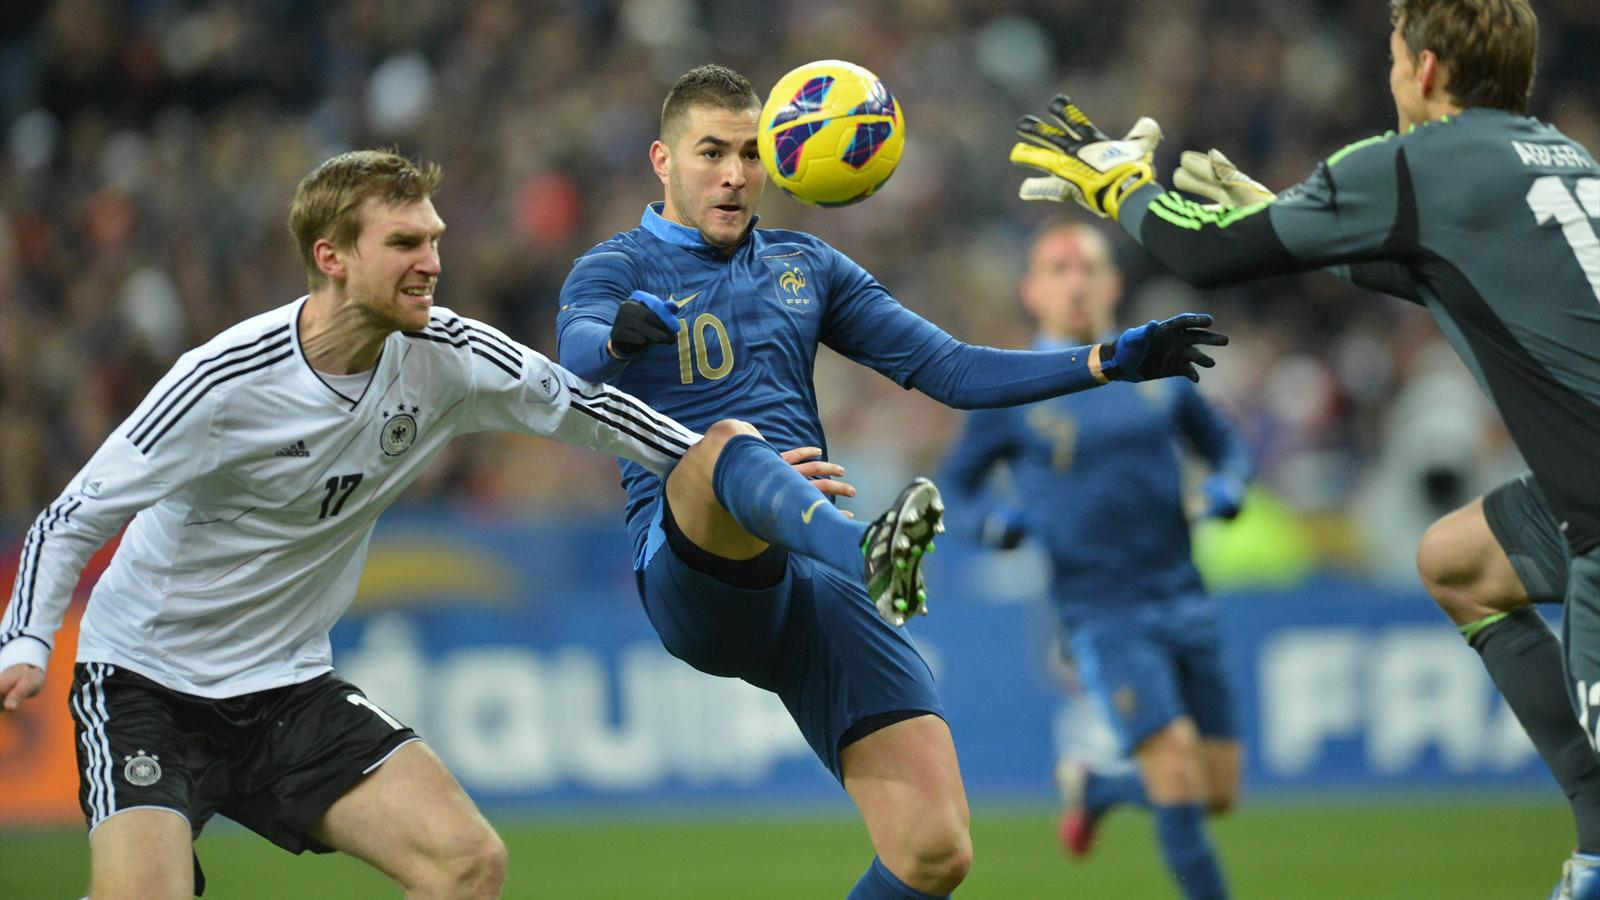 Match France Allemagne en direct live streaming